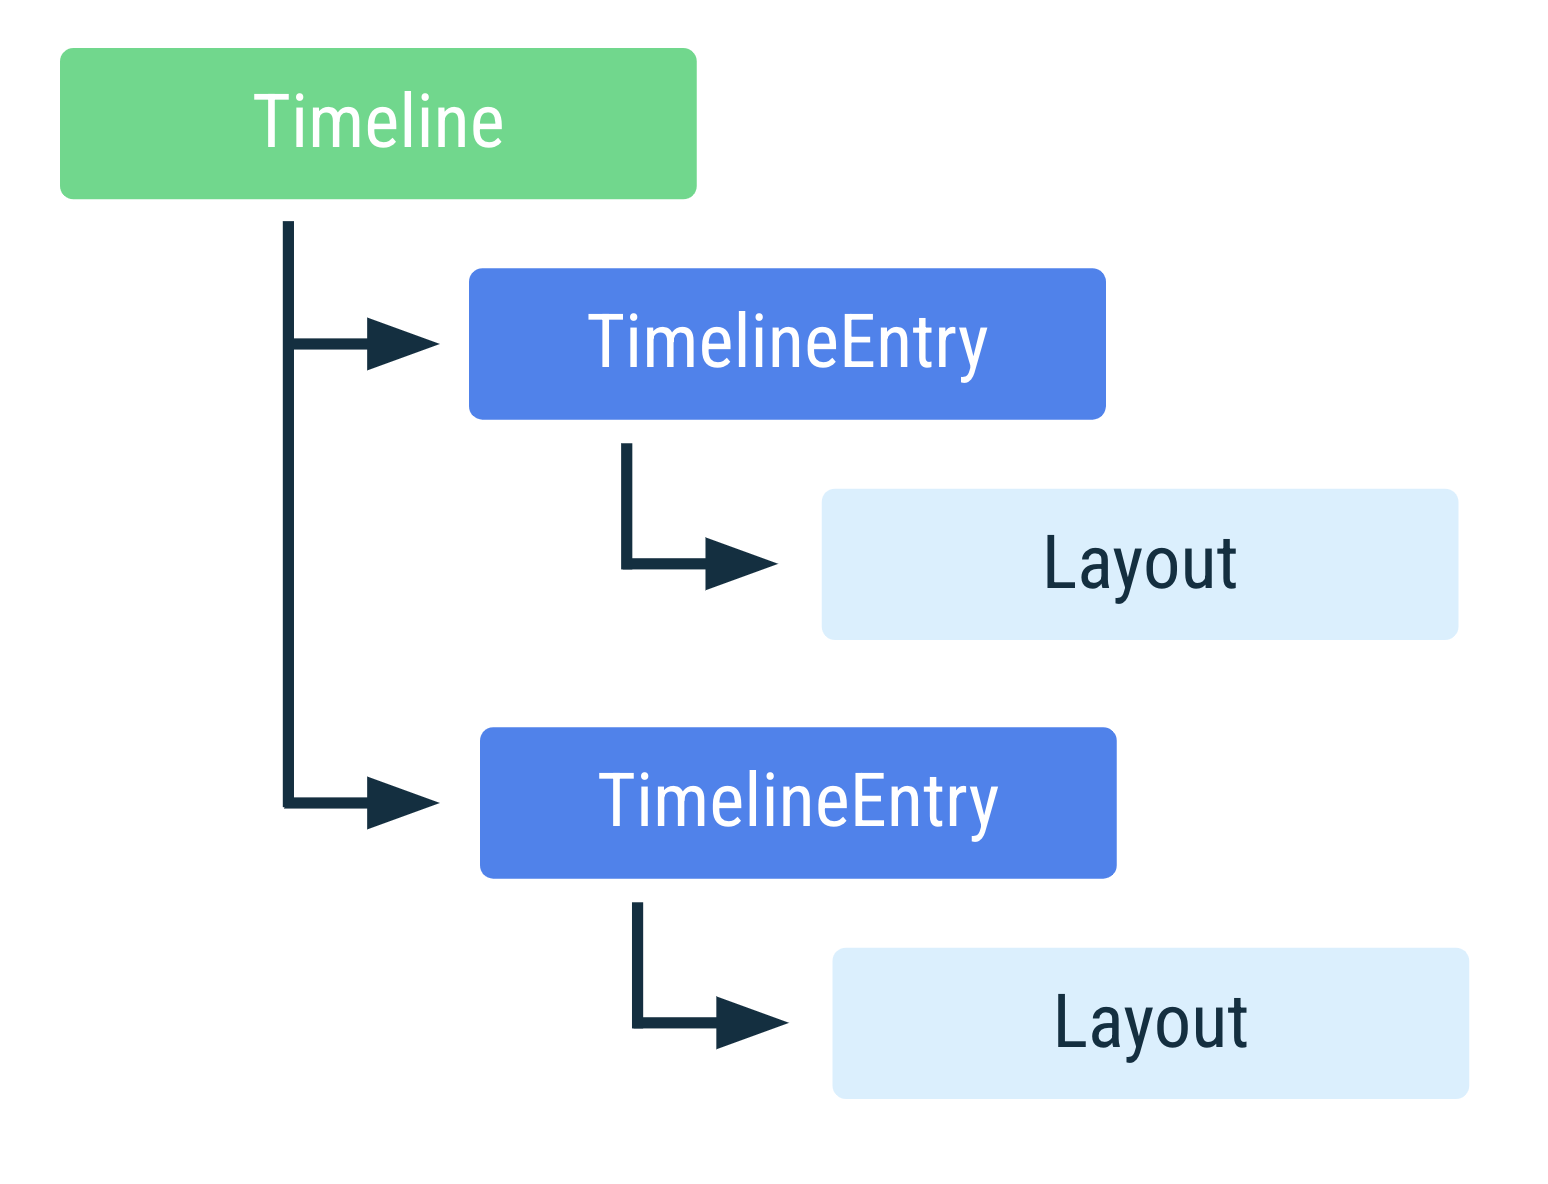 Diagram of Tile timeline